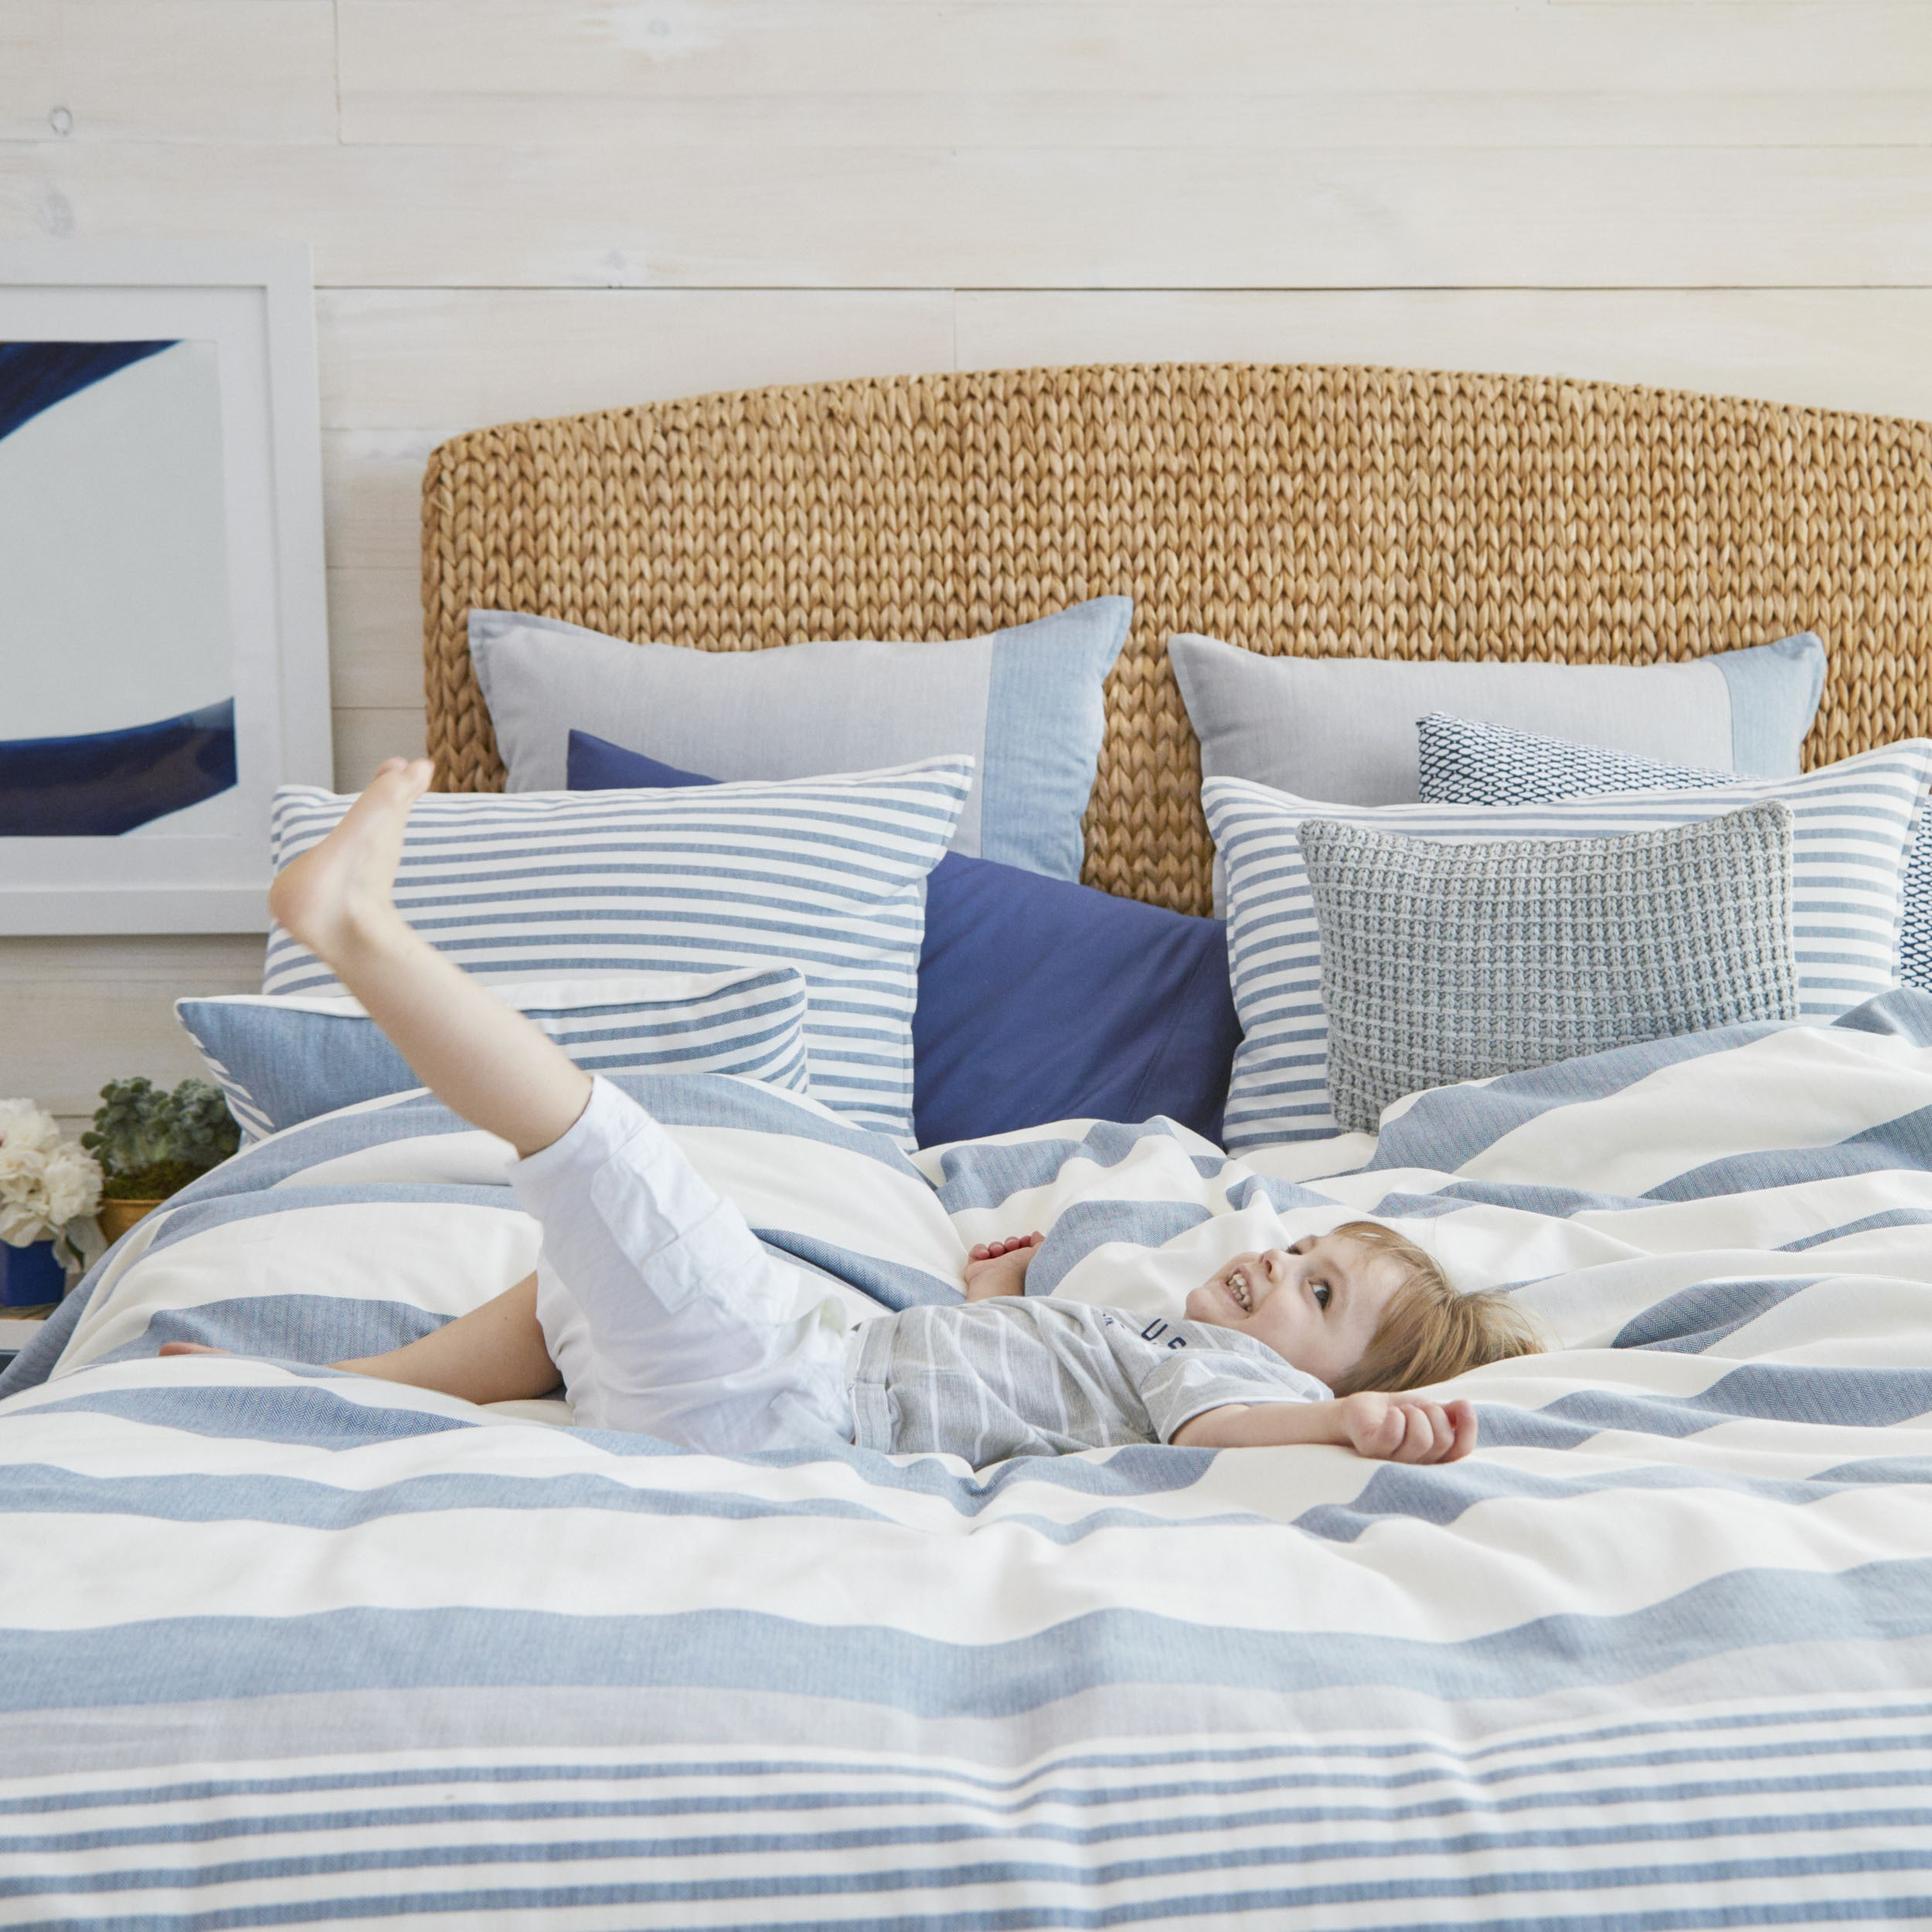 home comforter ideas click unique twill king twin designer by teal anchor set decoration decor sets from expand size bedding duvet love comfort cover organic to and queen designs nautical brushed saturation